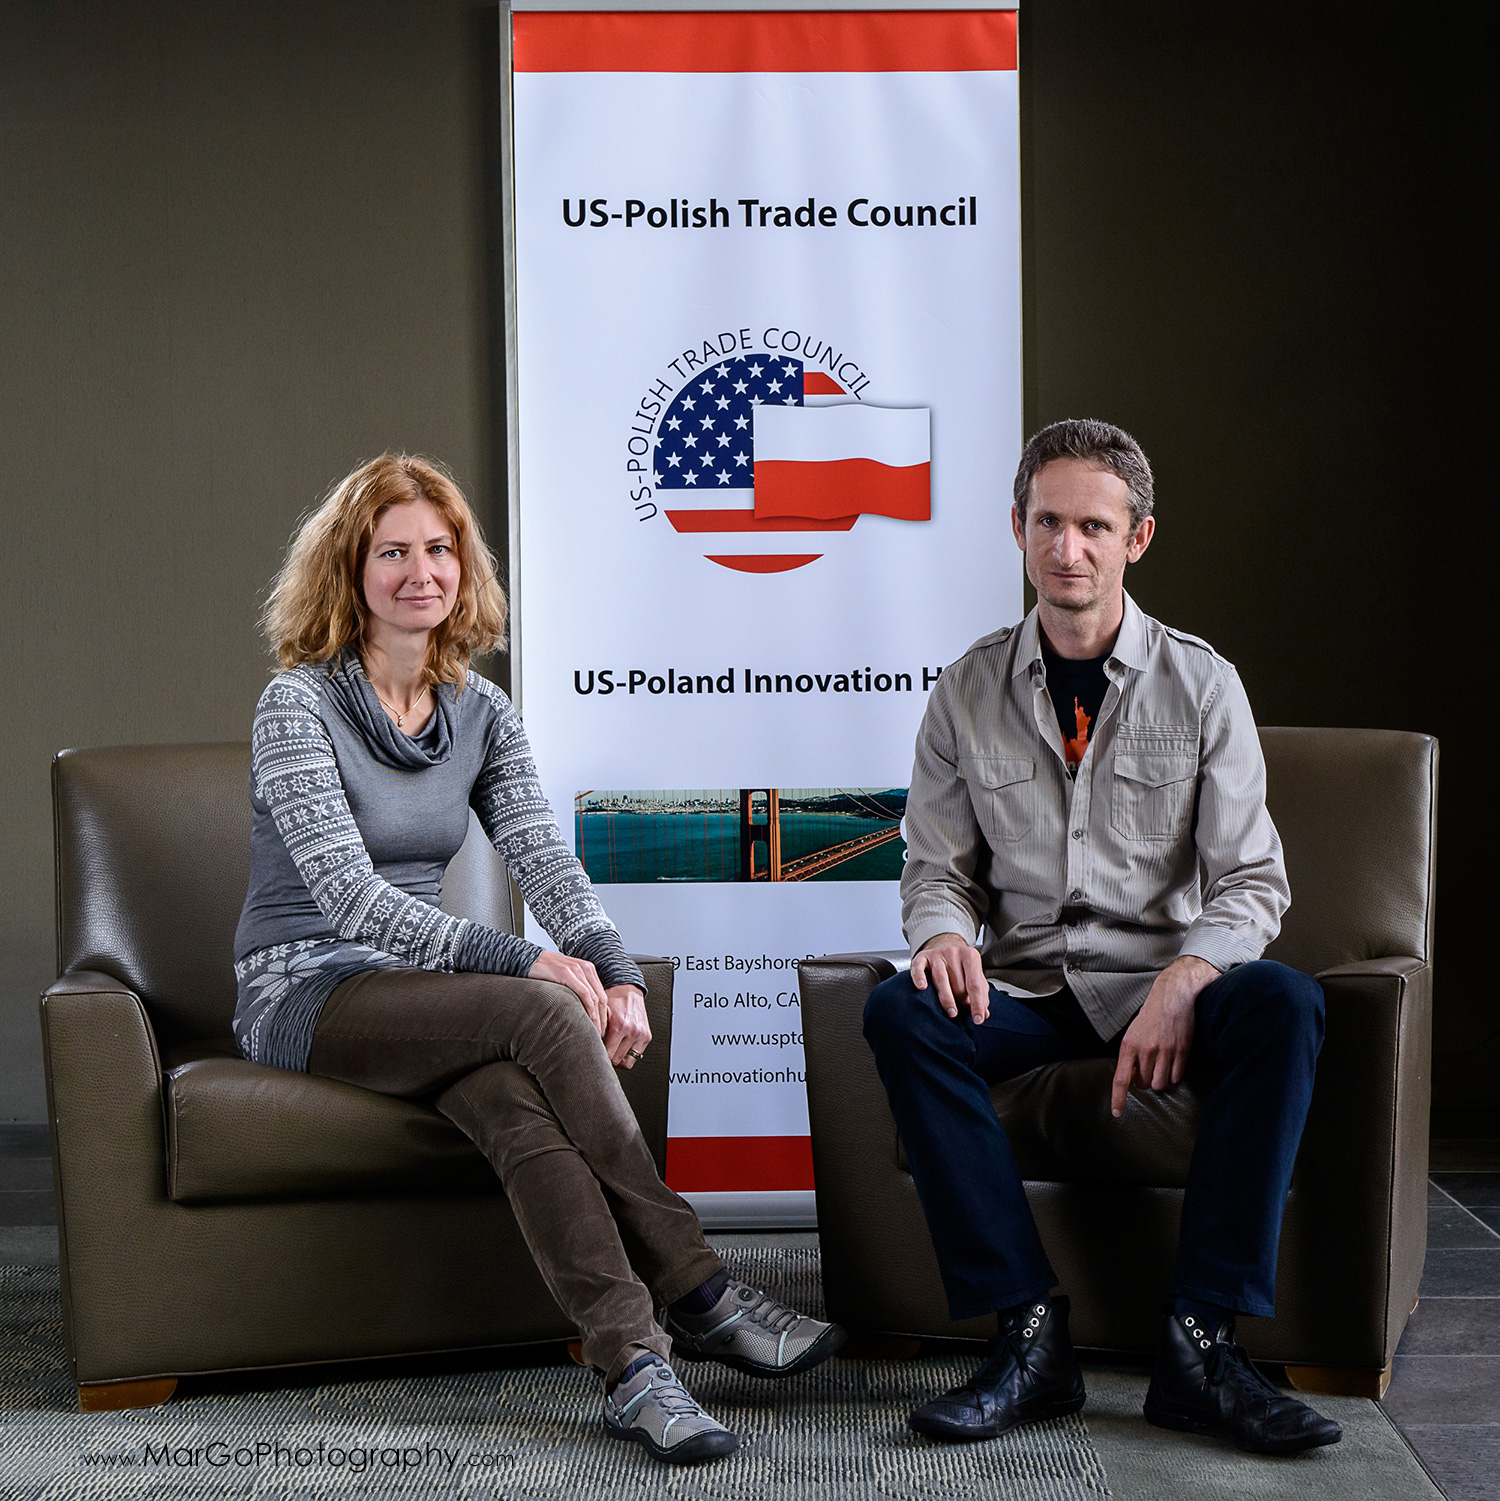 business portrait of the man and woman sitting on the chairs